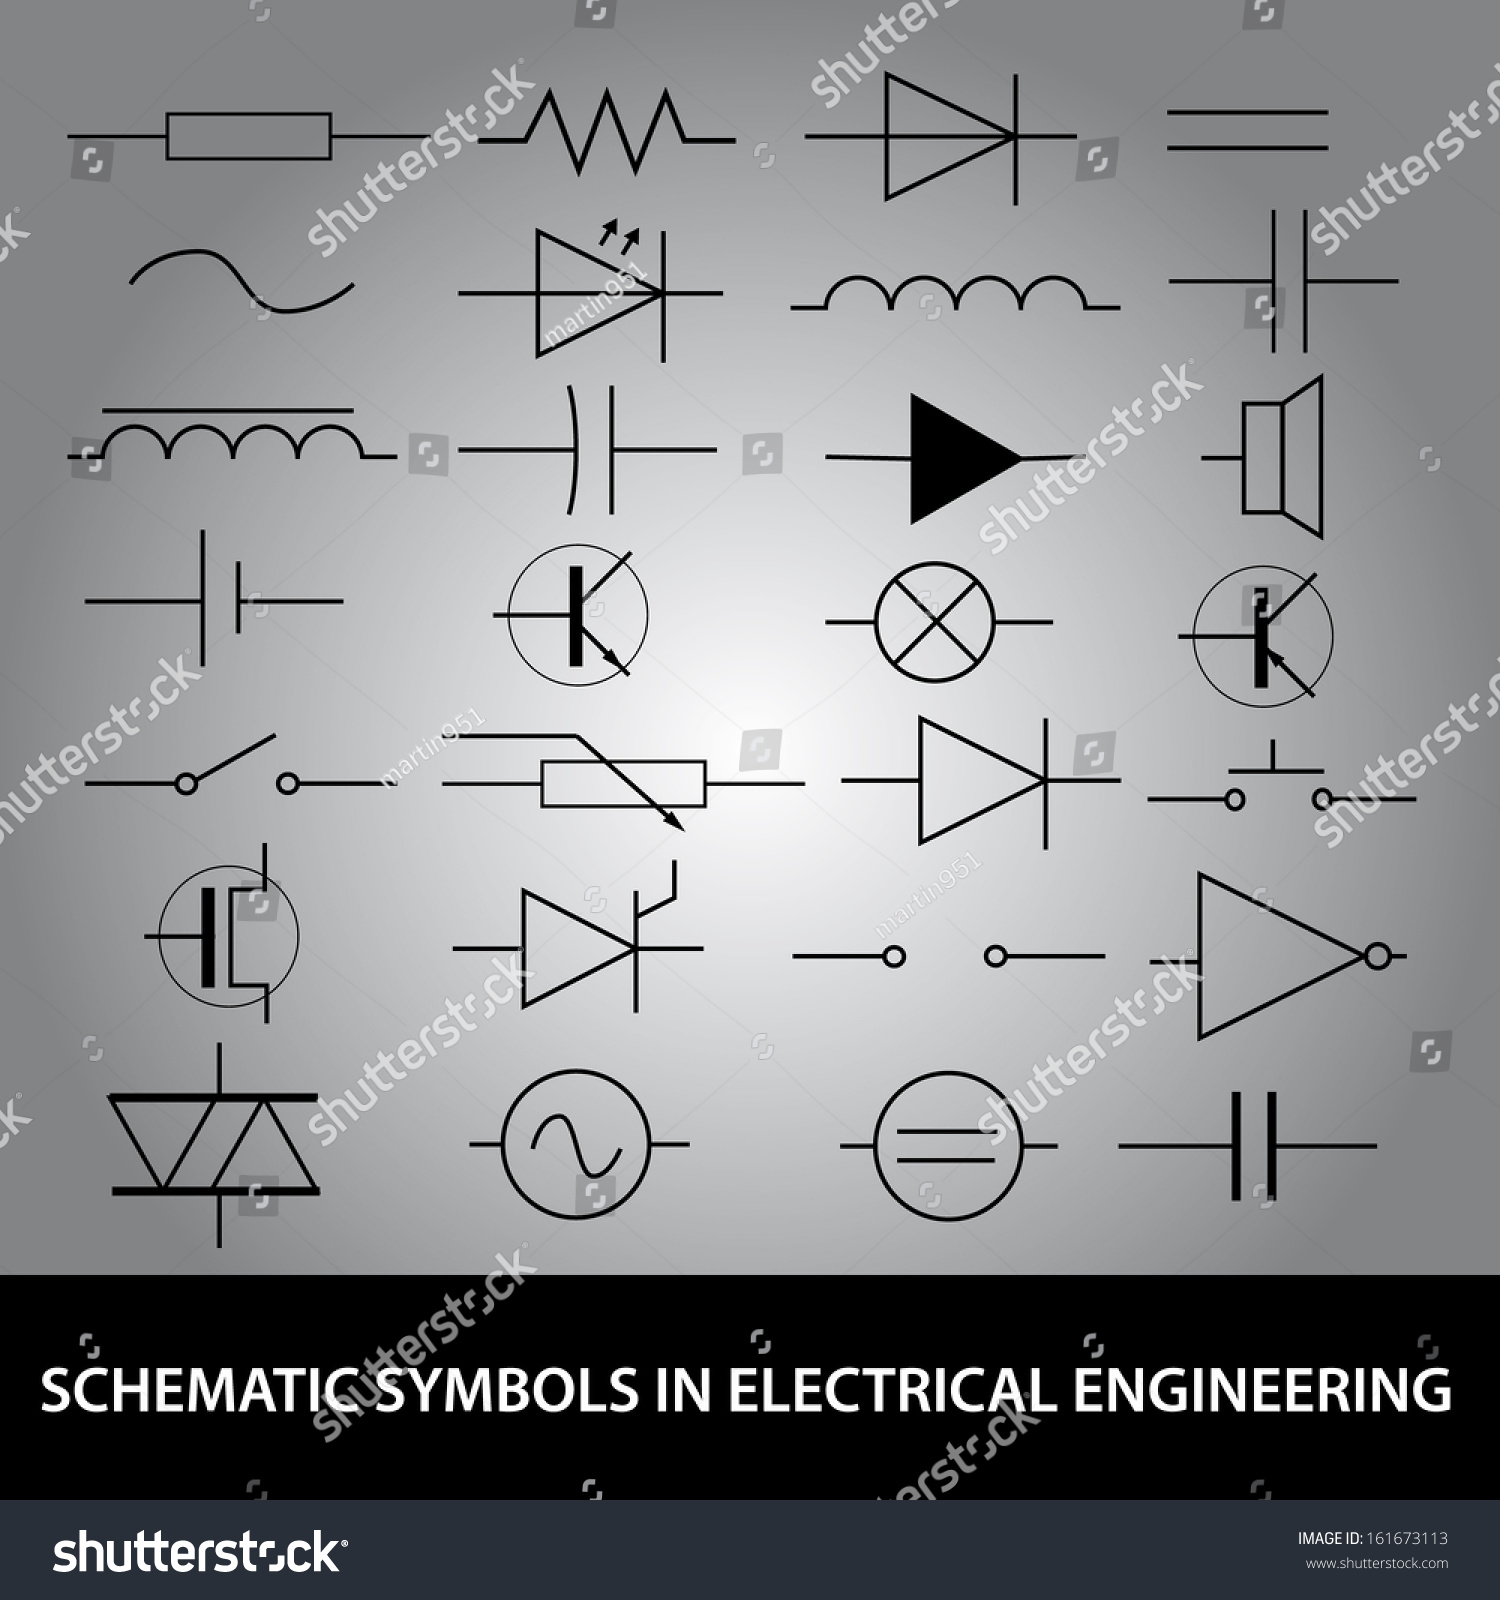 Schematic Symbols Electrical Engineering Icon Set Stock Vector ...